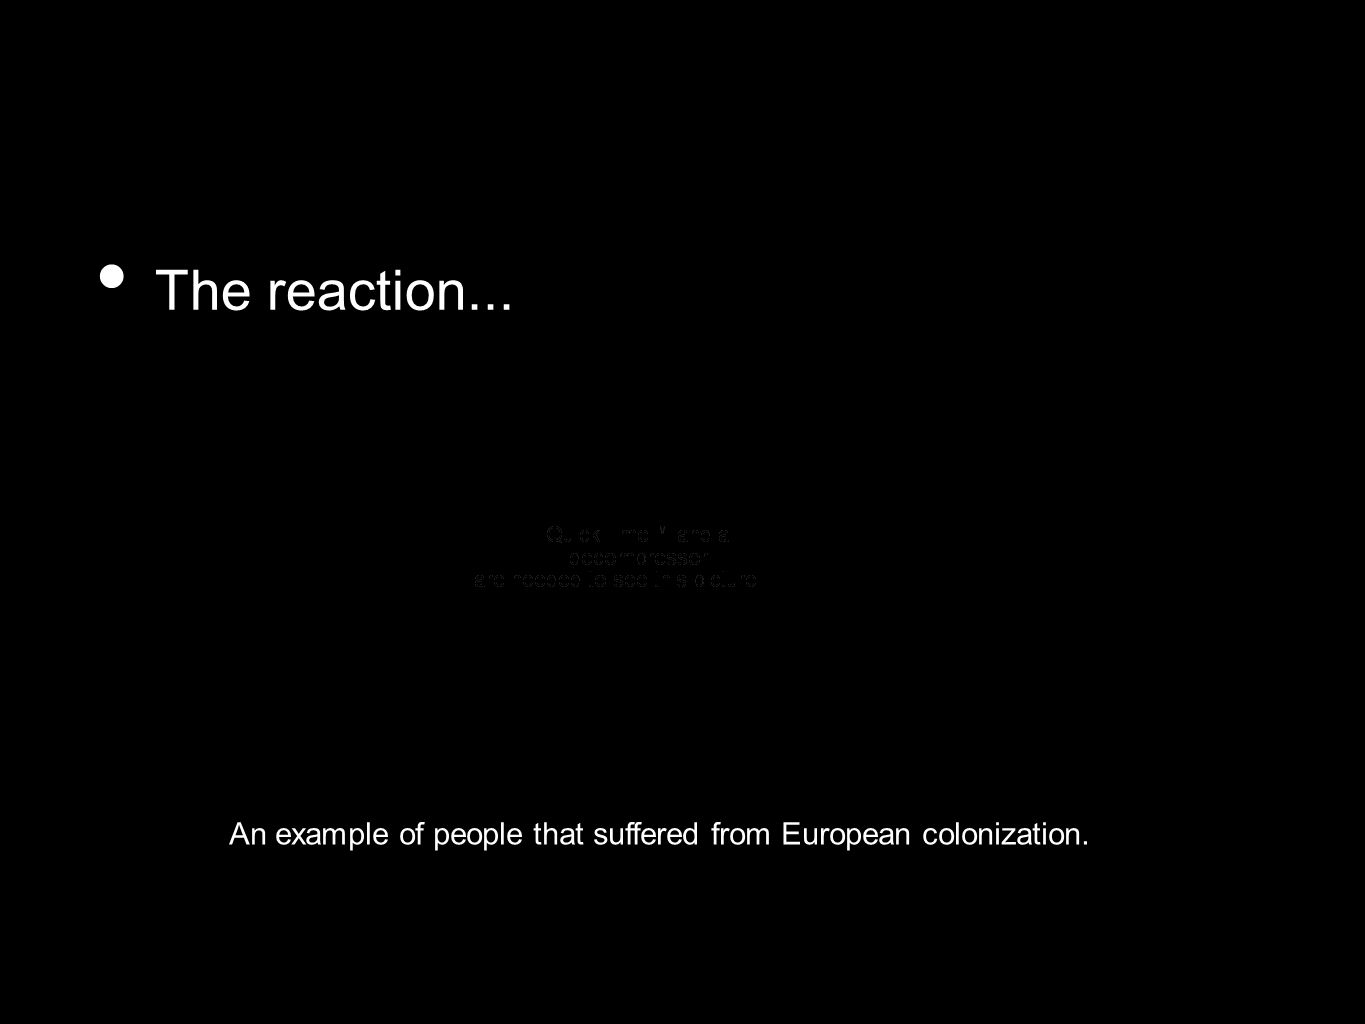 The reaction... An example of people that suffered from European colonization.